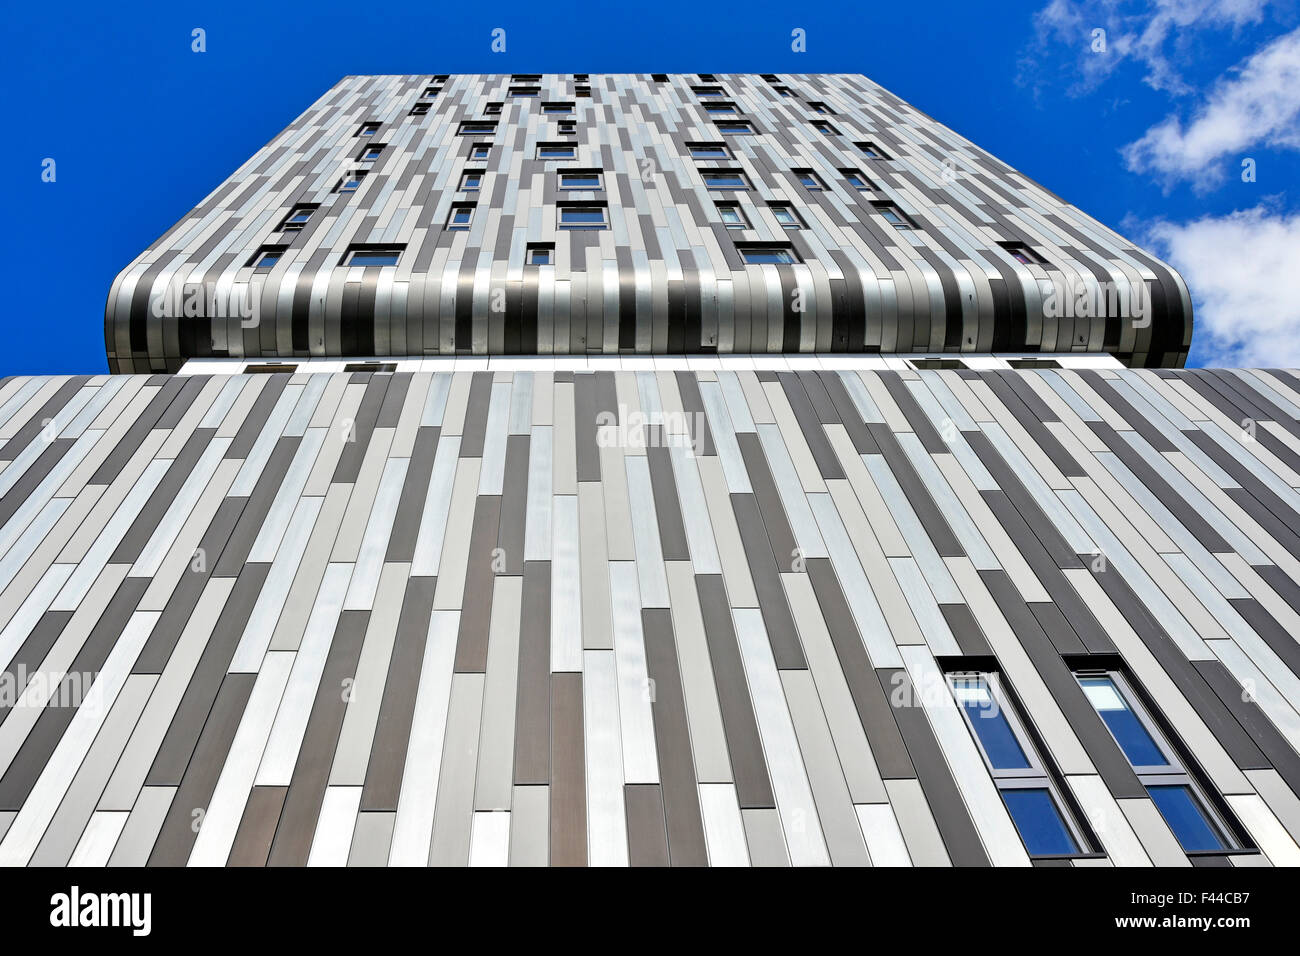 Apartment building block providing new homes in Woolwich South London England UK shades of grey used in striped - Stock Image